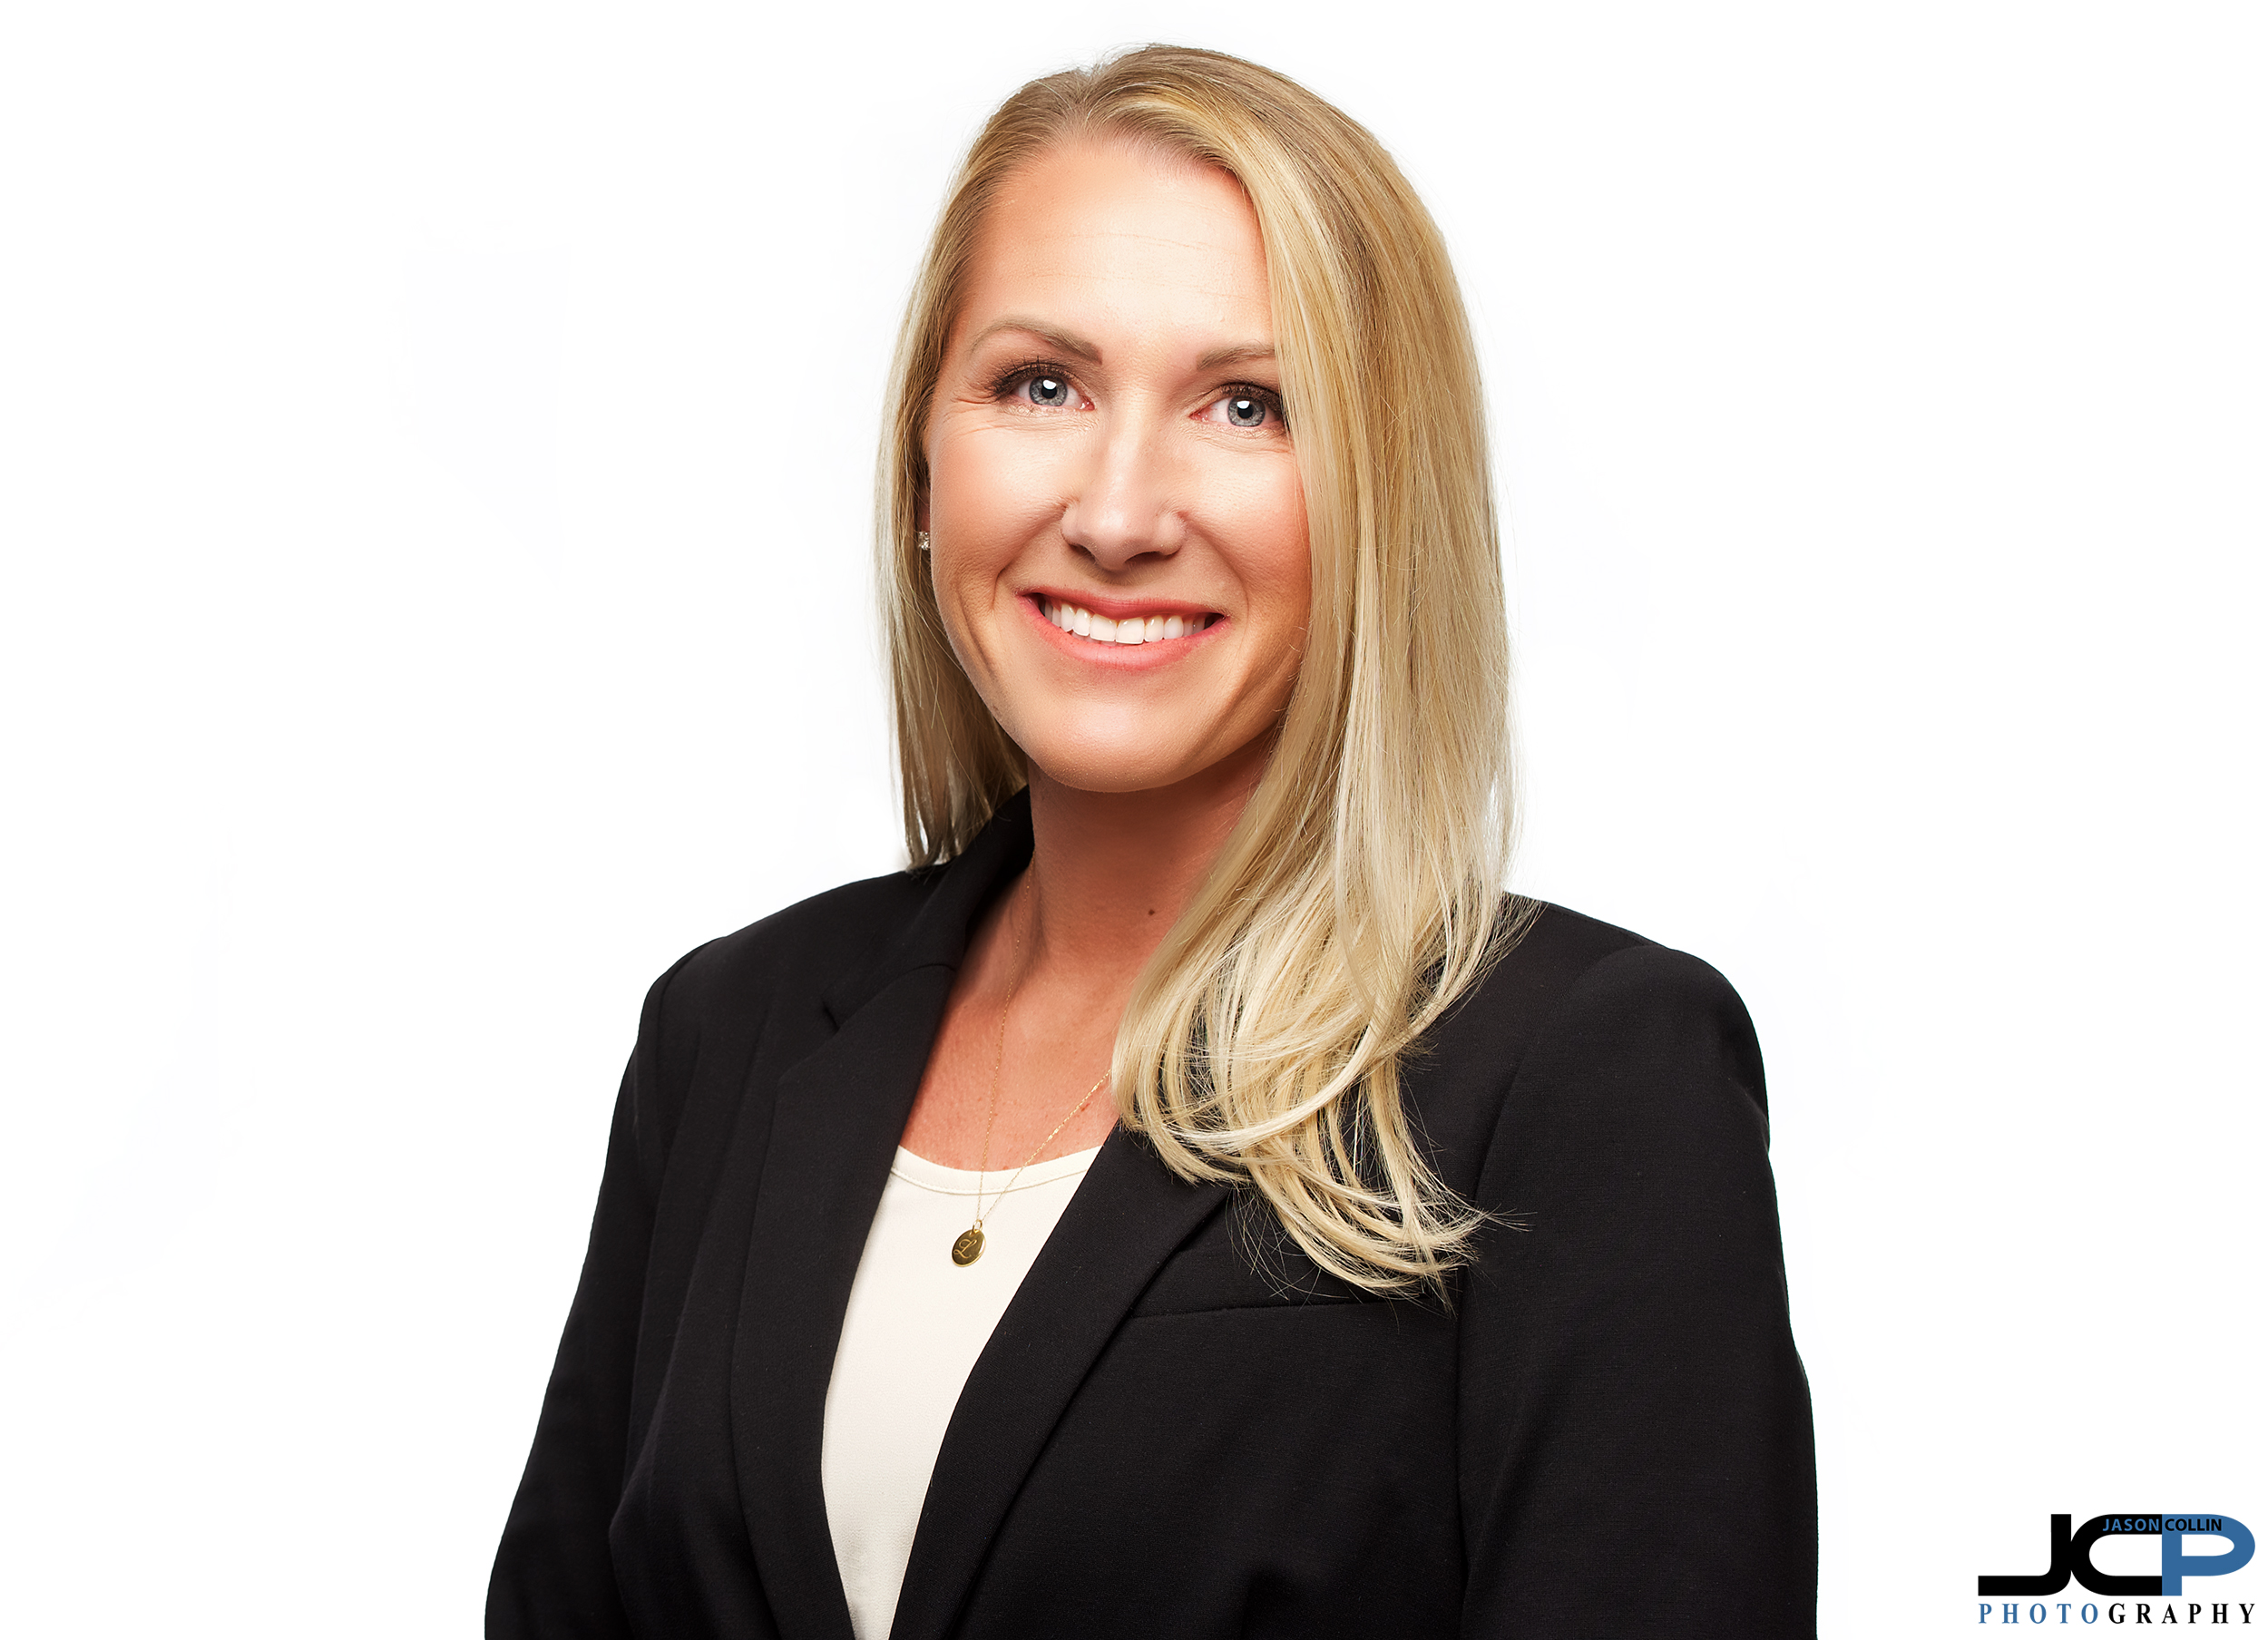 Making professional headshots in Lac Cruces New Mexico for a law firm